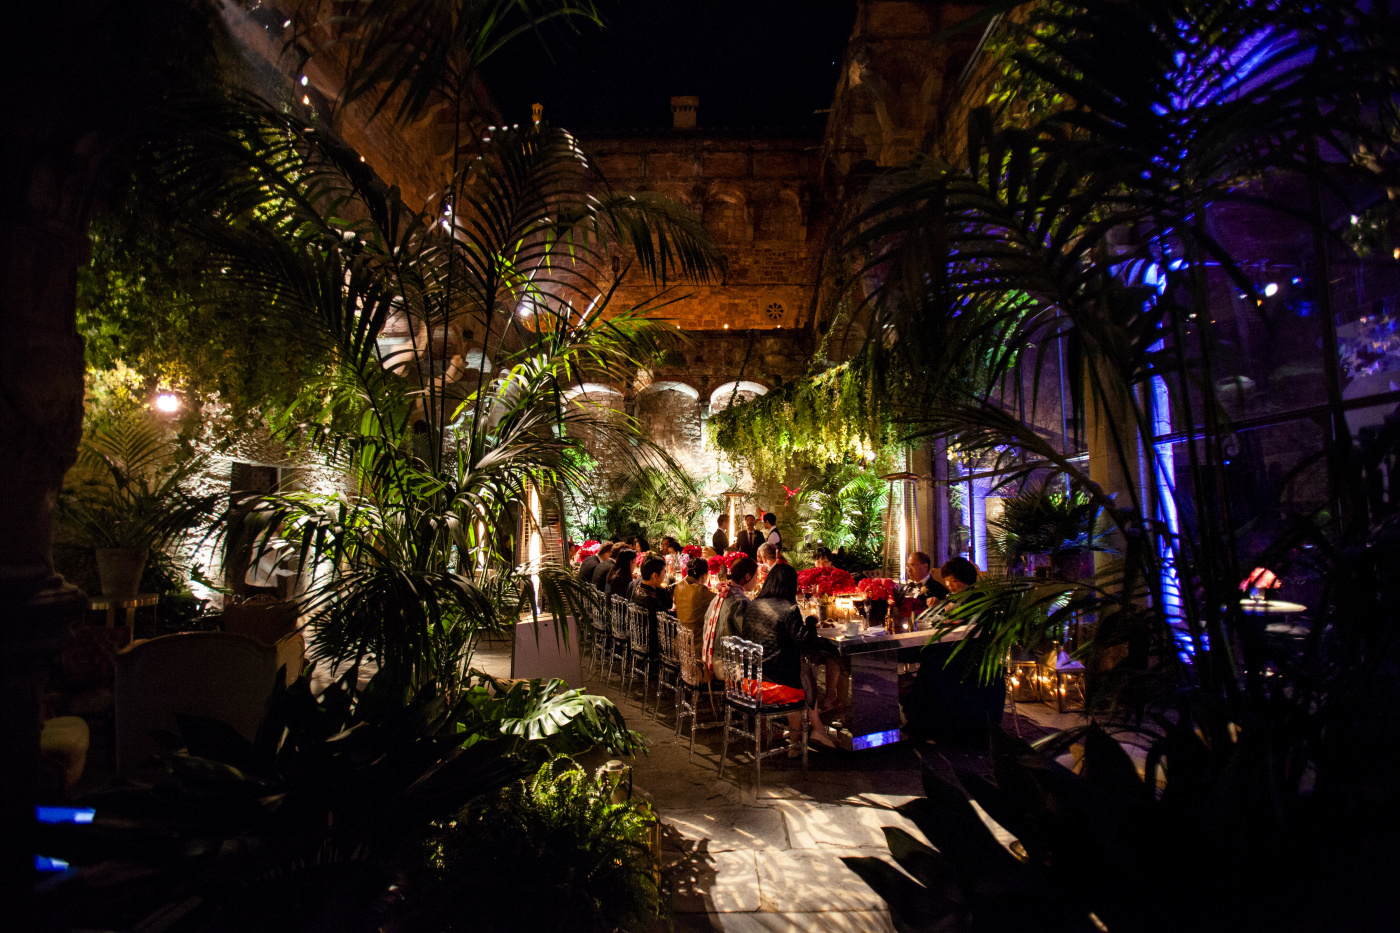 Castle courtyard for wedding dinner with fuxia flowers